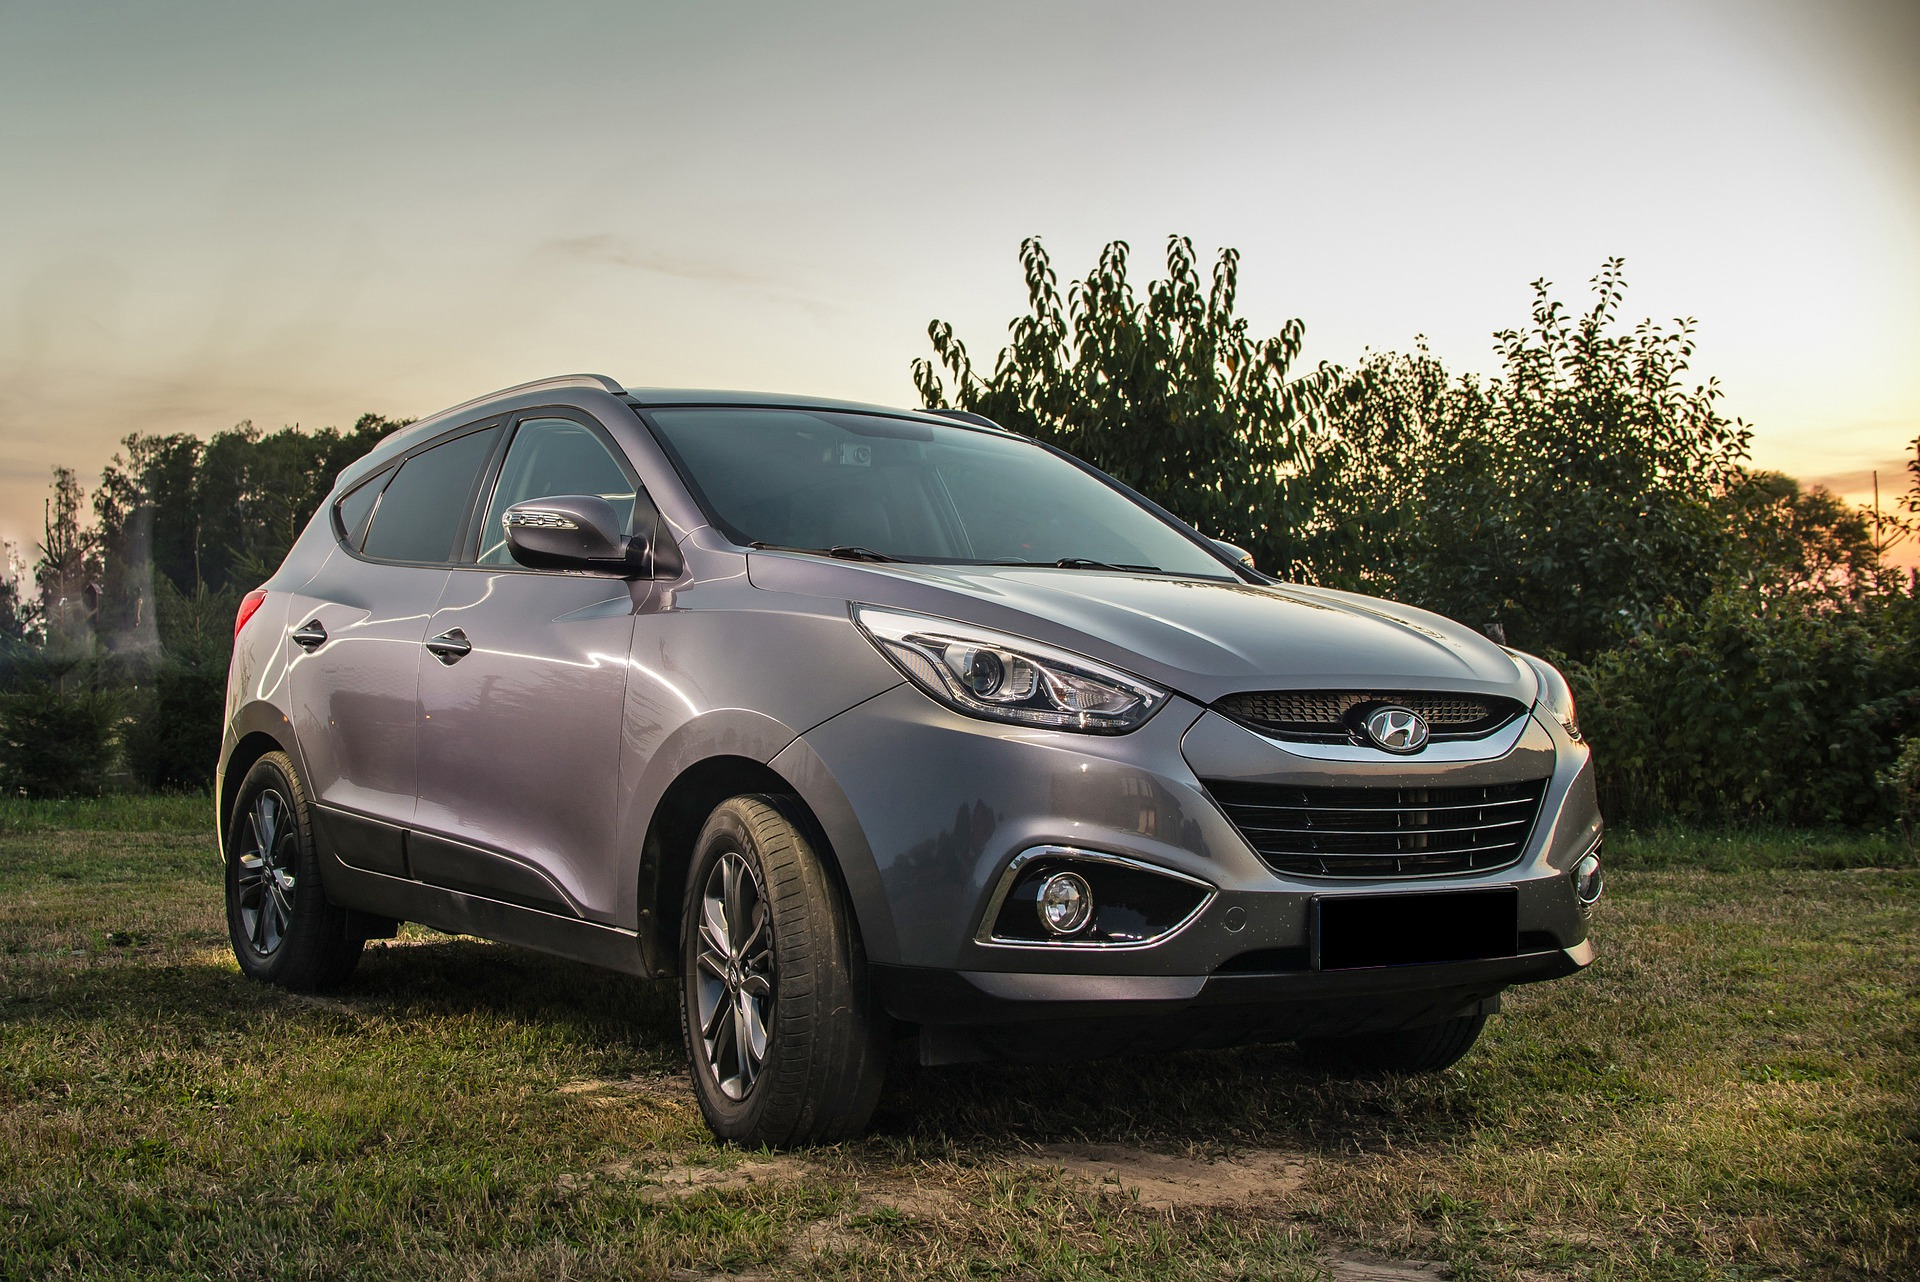 Hyundai SUV parked in field